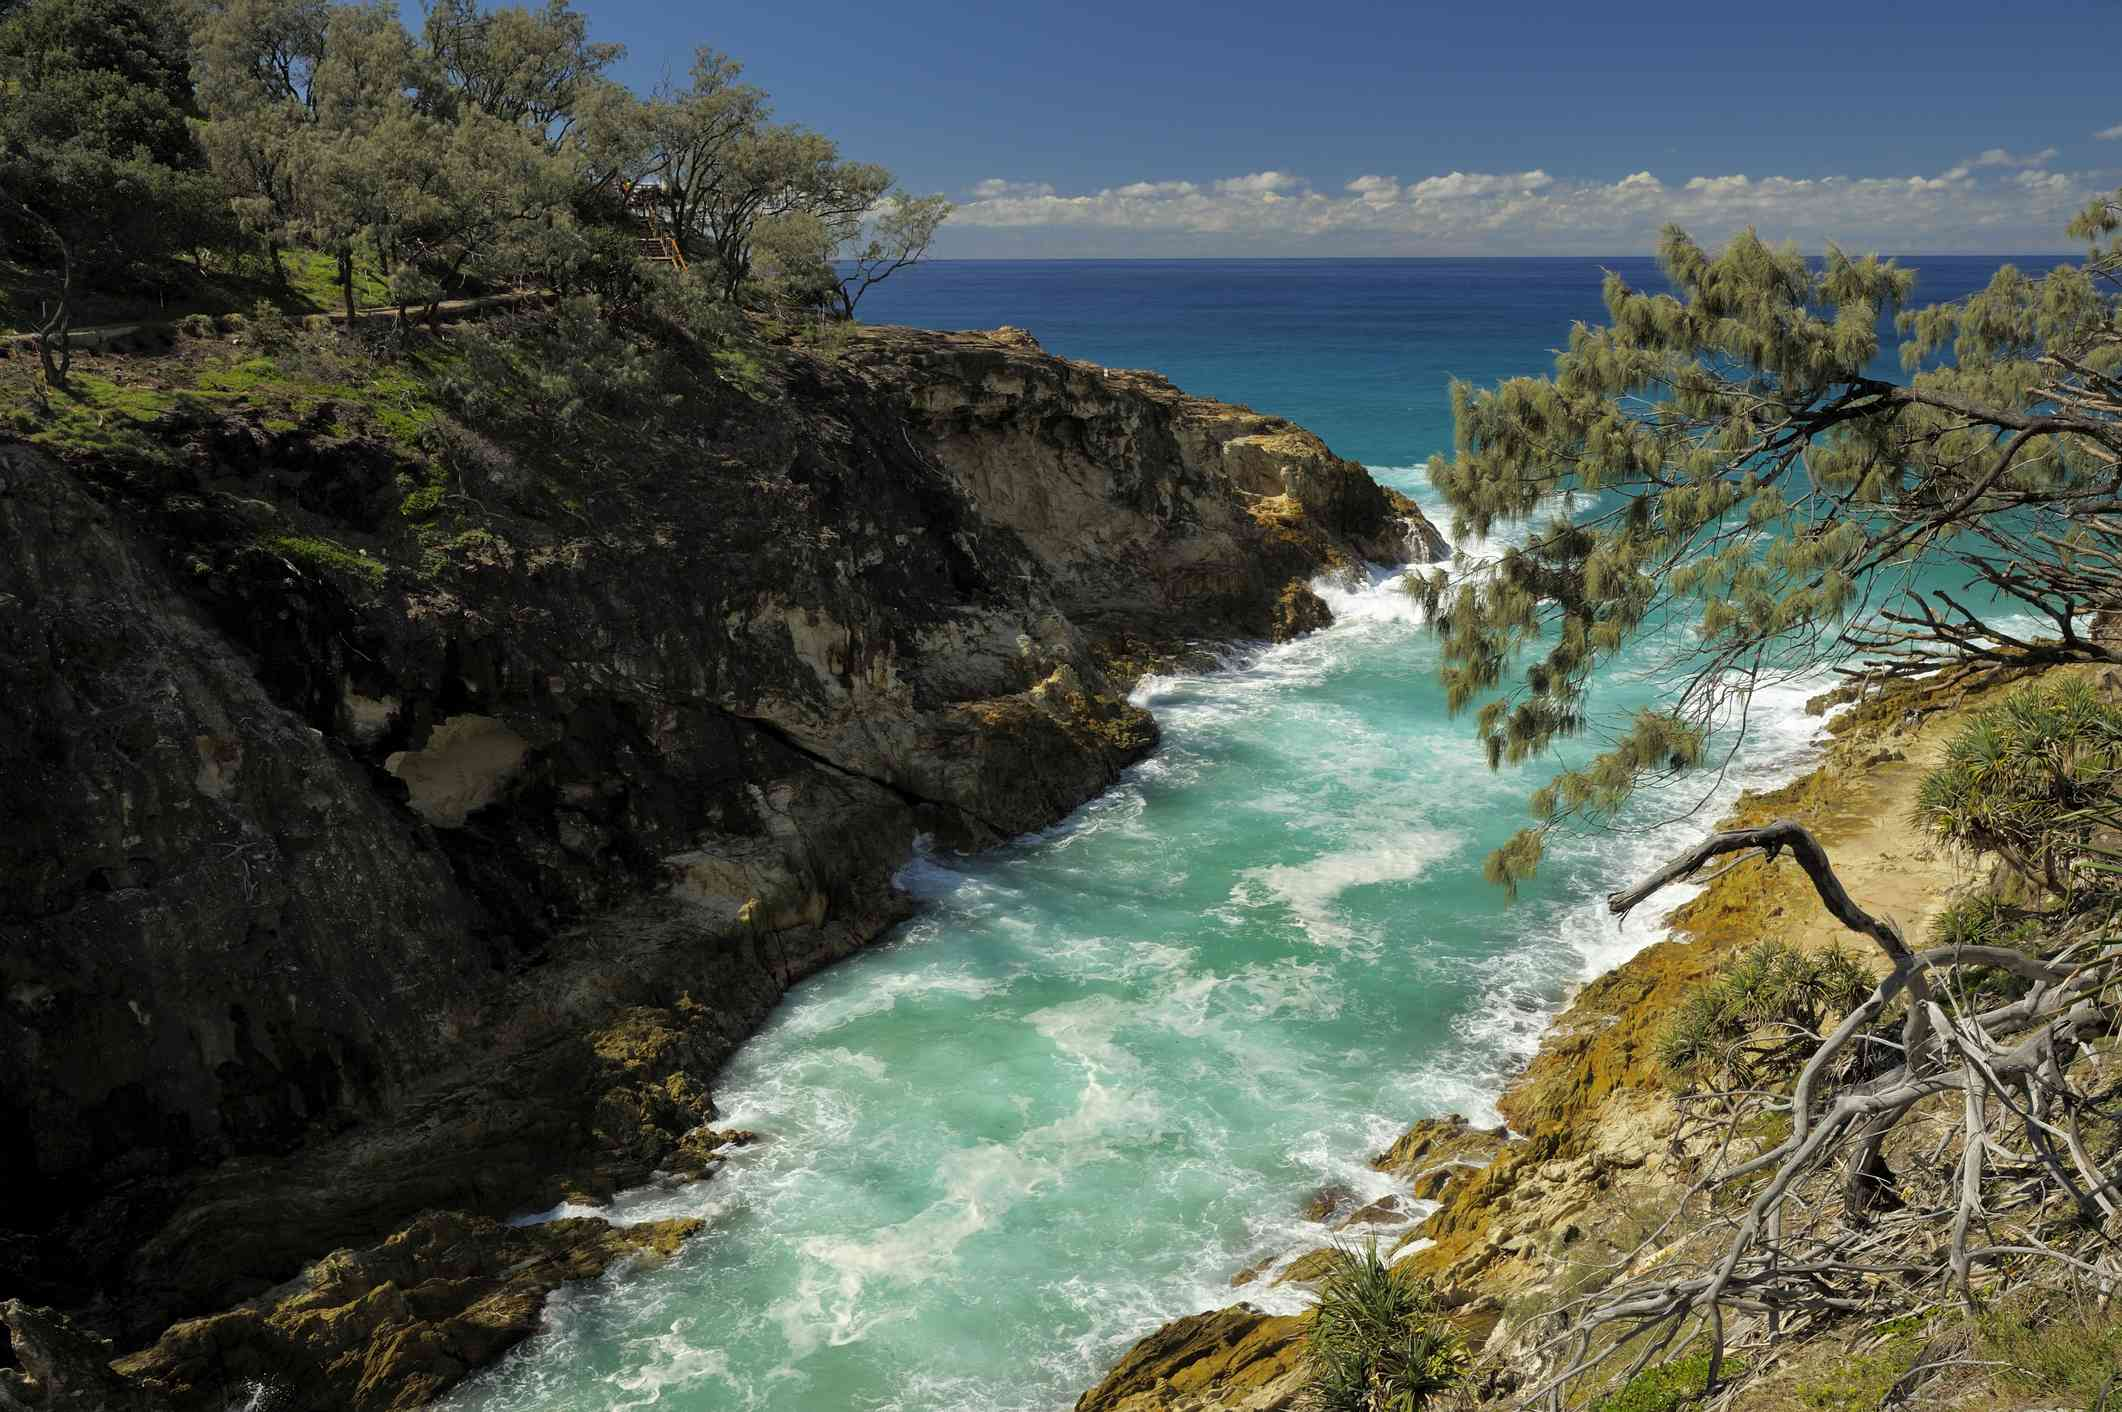 Pale blue-green water flowing through the rocky North Gorge